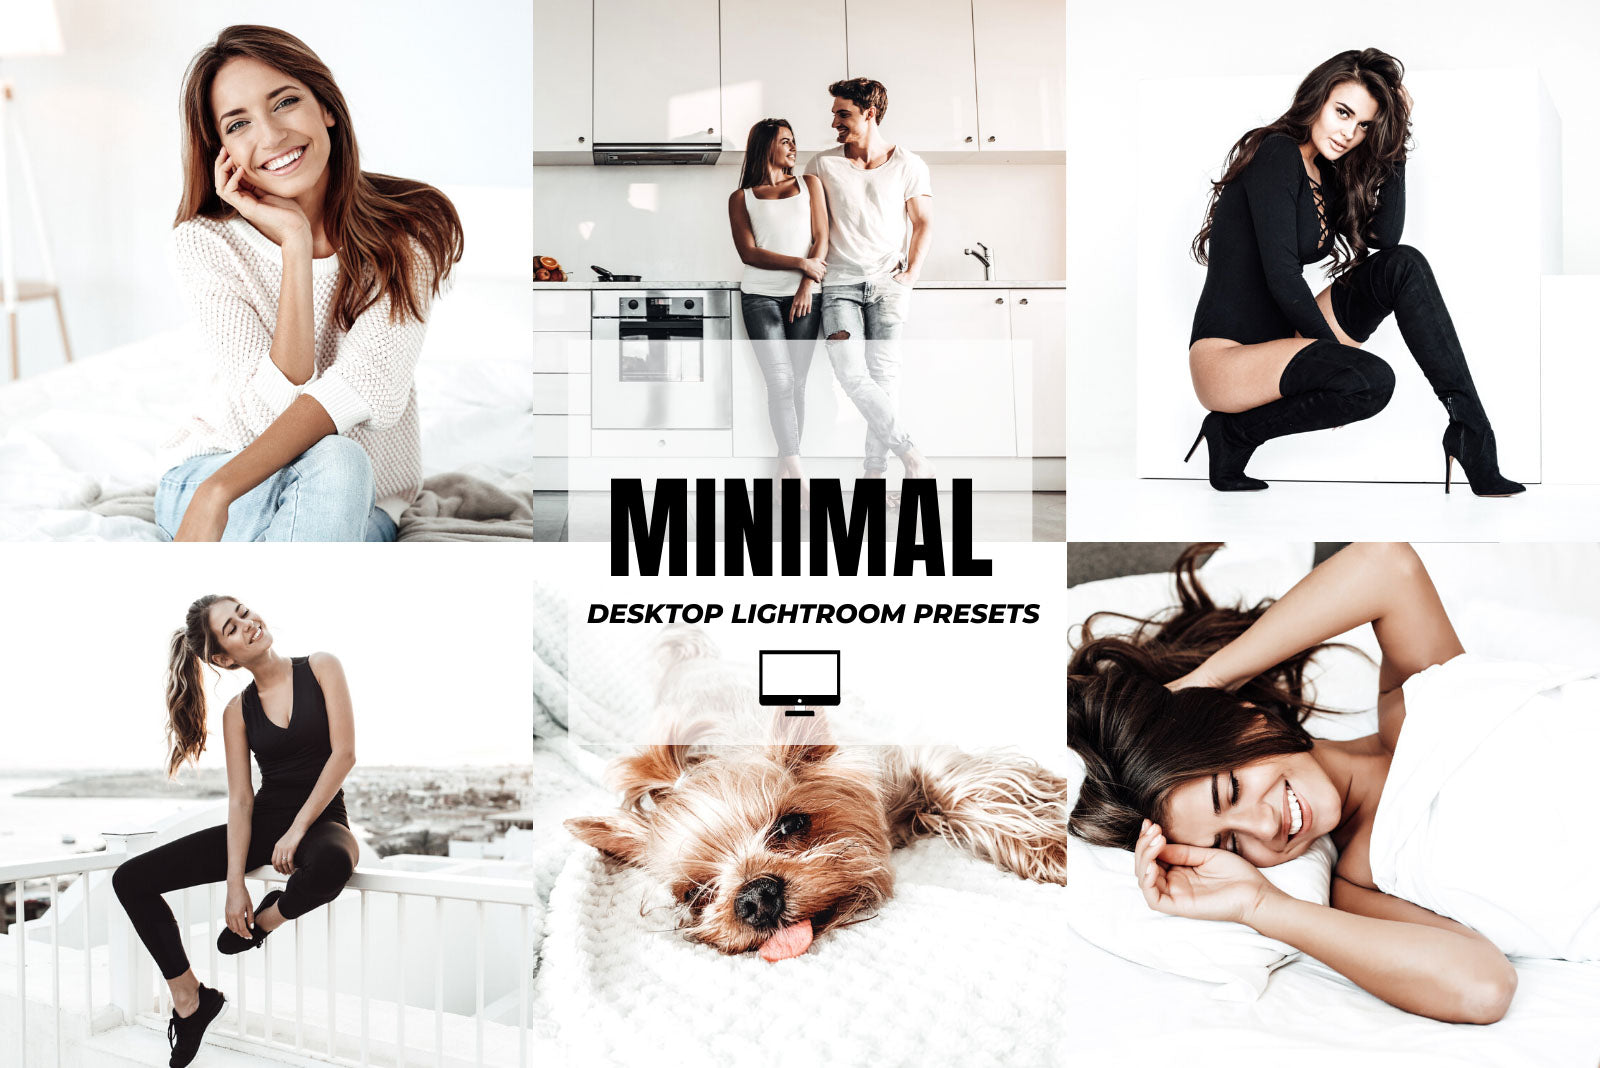 MINIMAL DESKTOP LIGHTROOM PRESETS by The Viral Presets